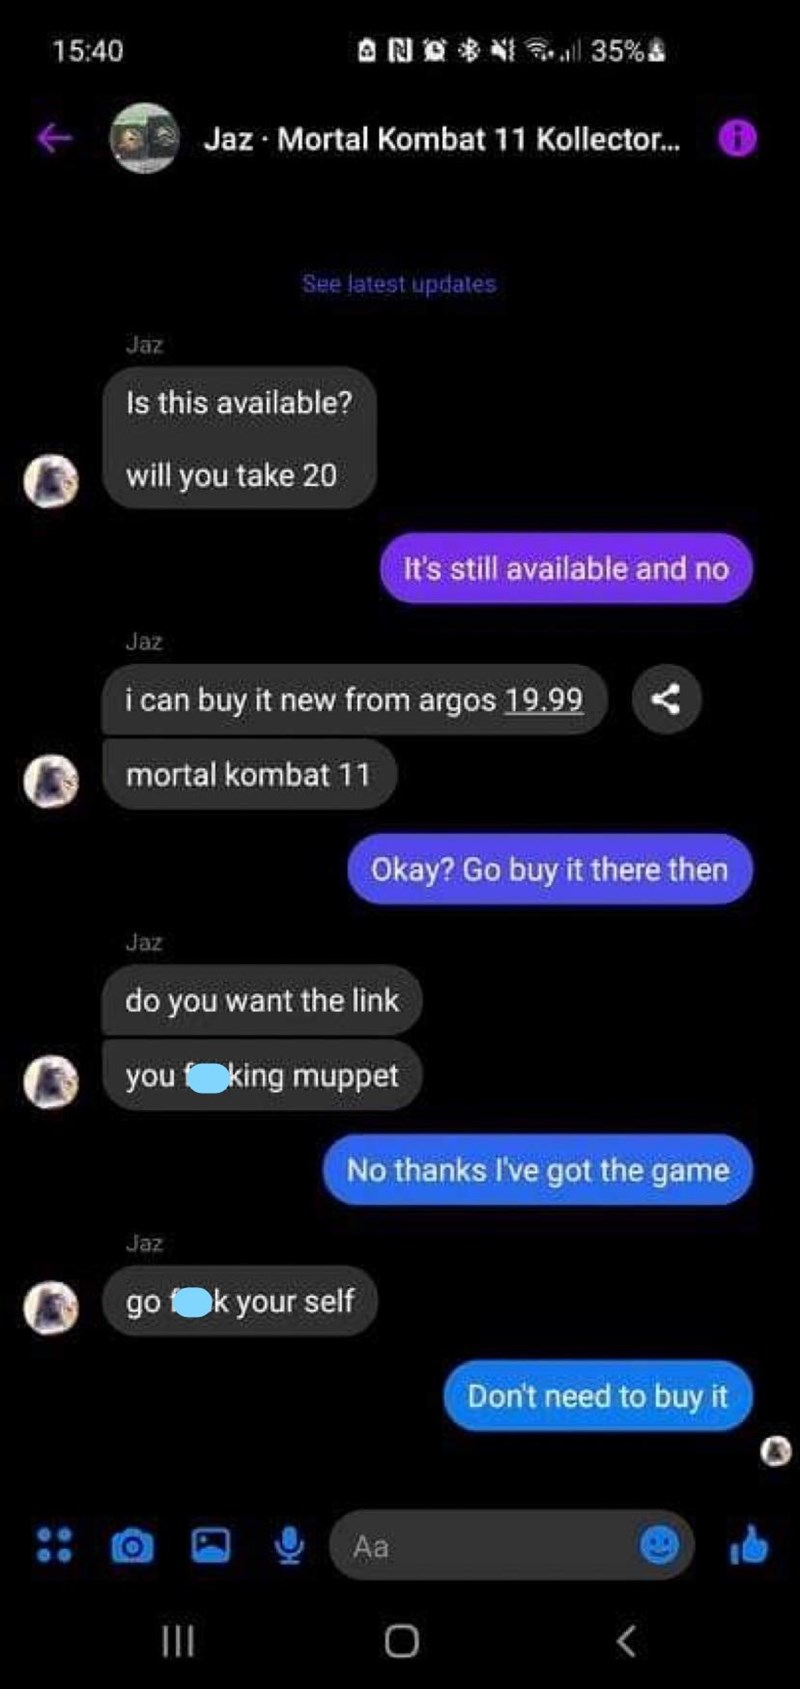 Gadget - 15:40 ANO * NI l 35%s Jaz · Mortal Kombat 11 Kollector. See latest updates Jaz Is this available? will you take 20 It's still available and no Jaz i can buy it new from argos 19.99 mortal kombat 11 Okay? Go buy it there then Jaz do you want the link you king muppet No thanks I've got the game Jaz go Ok your self Don't need to buy it Aa II 三D